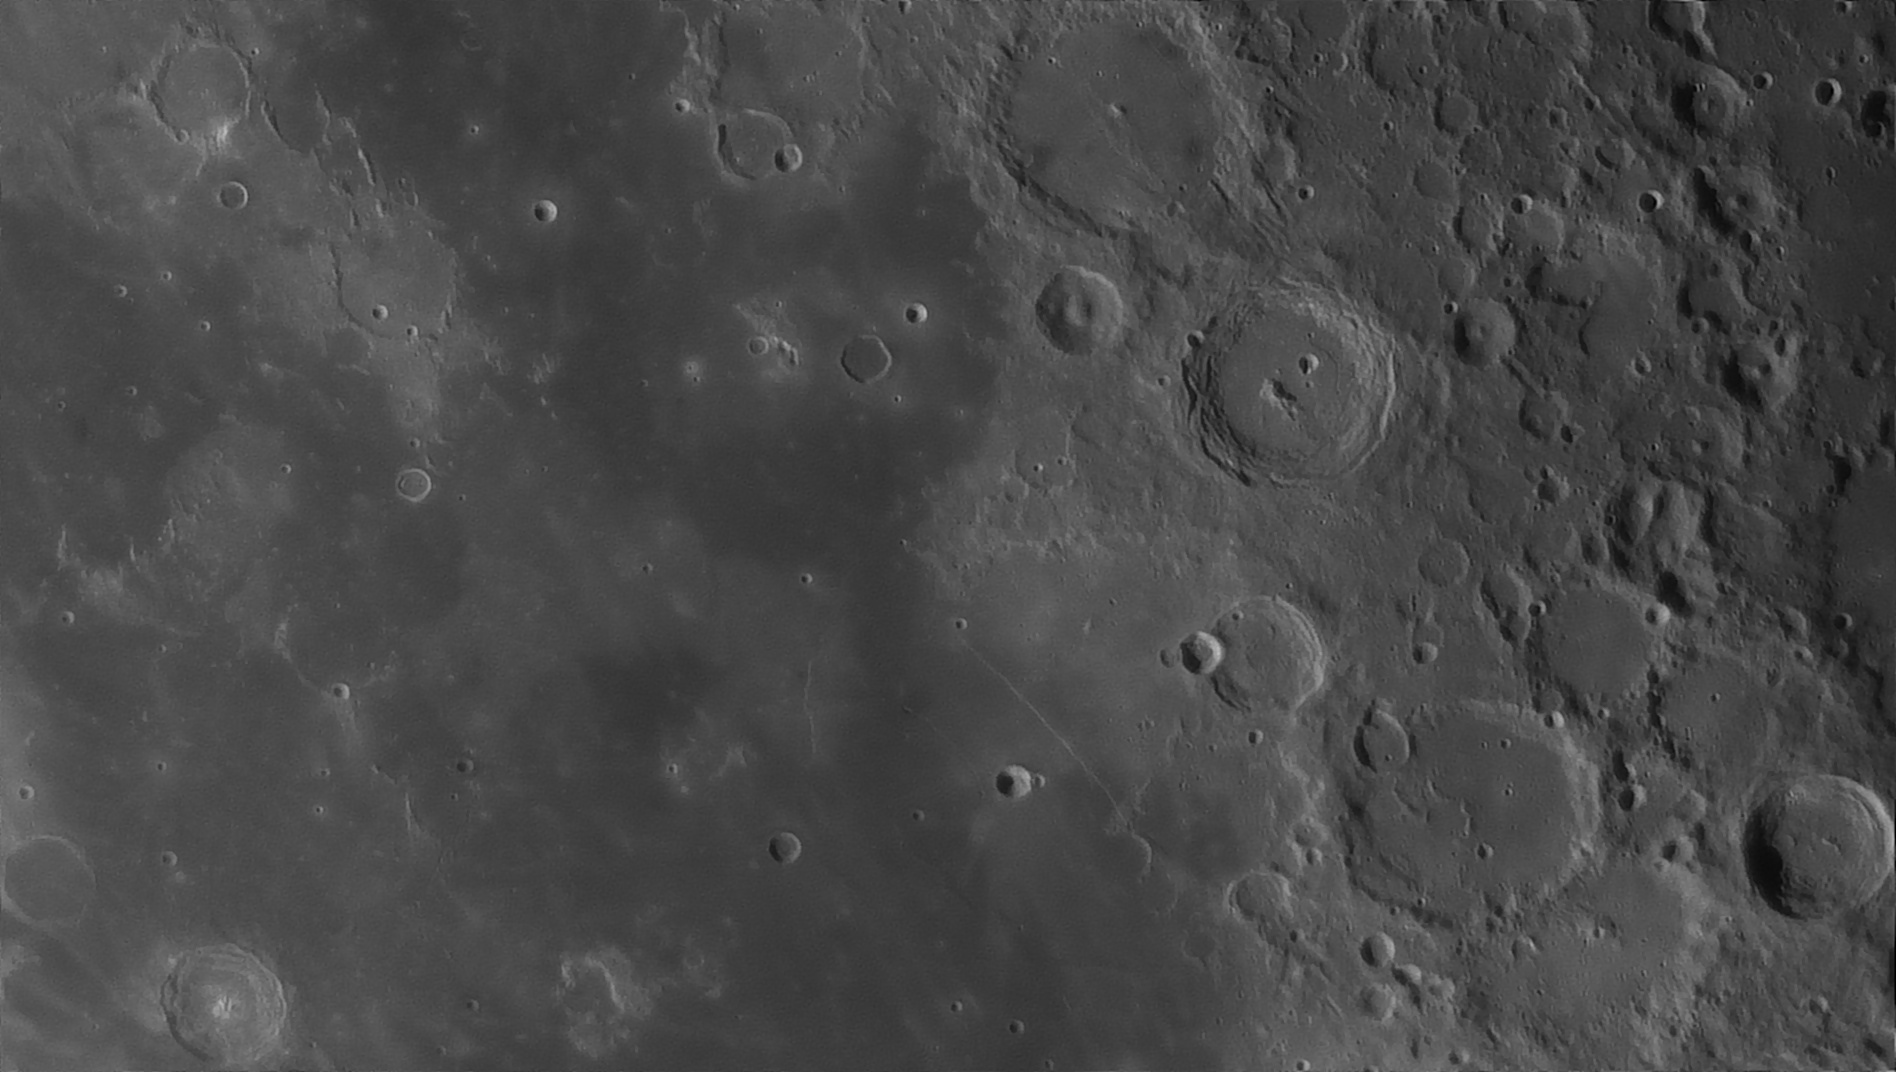 5e5195ee1d4df_Moon_054639_160120_ZWOASI290MM_Rouge_23A_AS_P35_lapl6_ap1067_AI_Deconvolution_16--.jpg.af799e1d79e69d4550343ded2b8dac2a.jpg